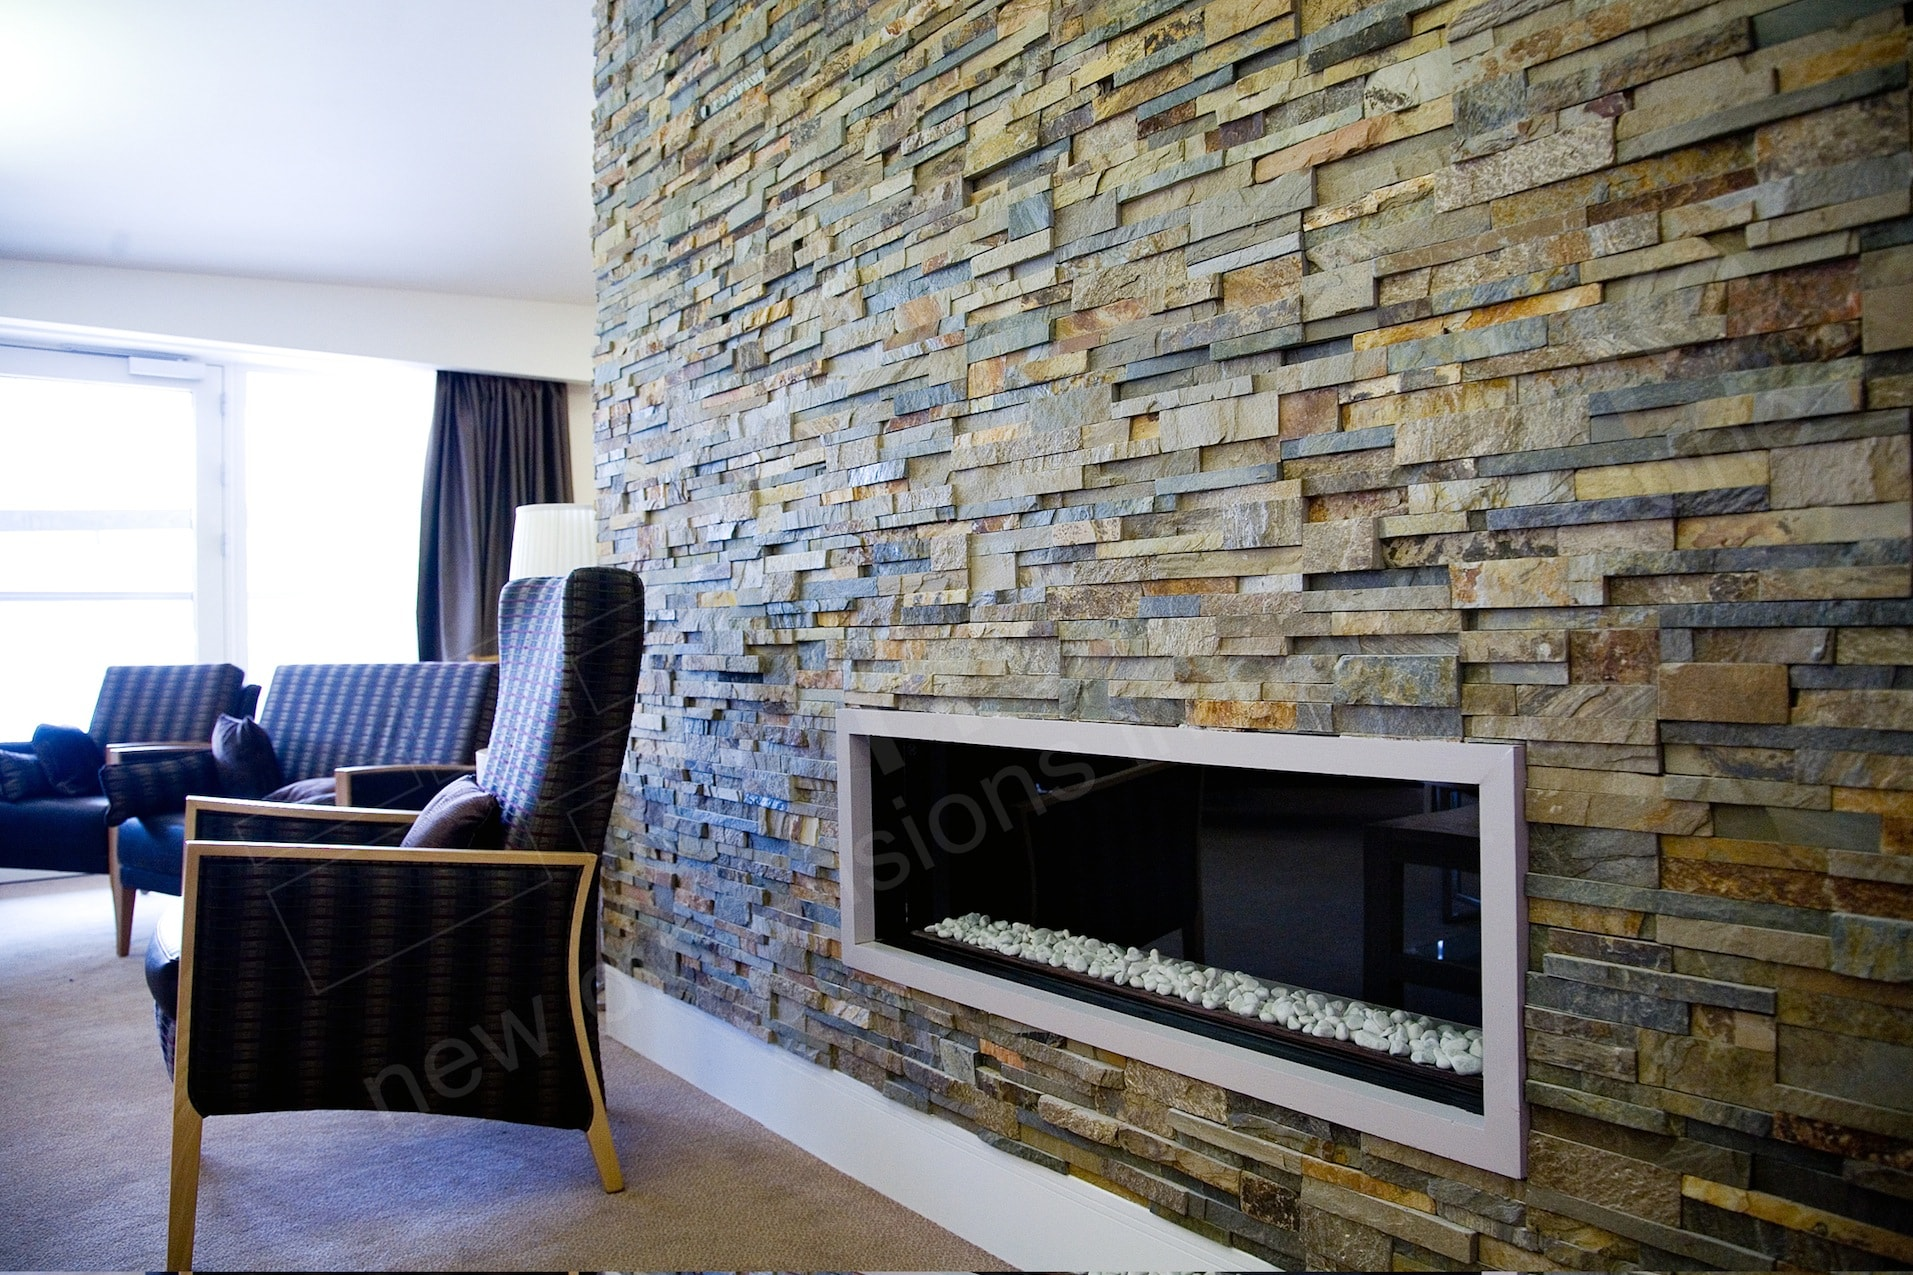 for wall lounge decorations mantel rustic stone sofa veneer vintage table combine a log home chair also fireplaces exposed coffee during warm cozy winter leather wooden plus with room design living fireplace